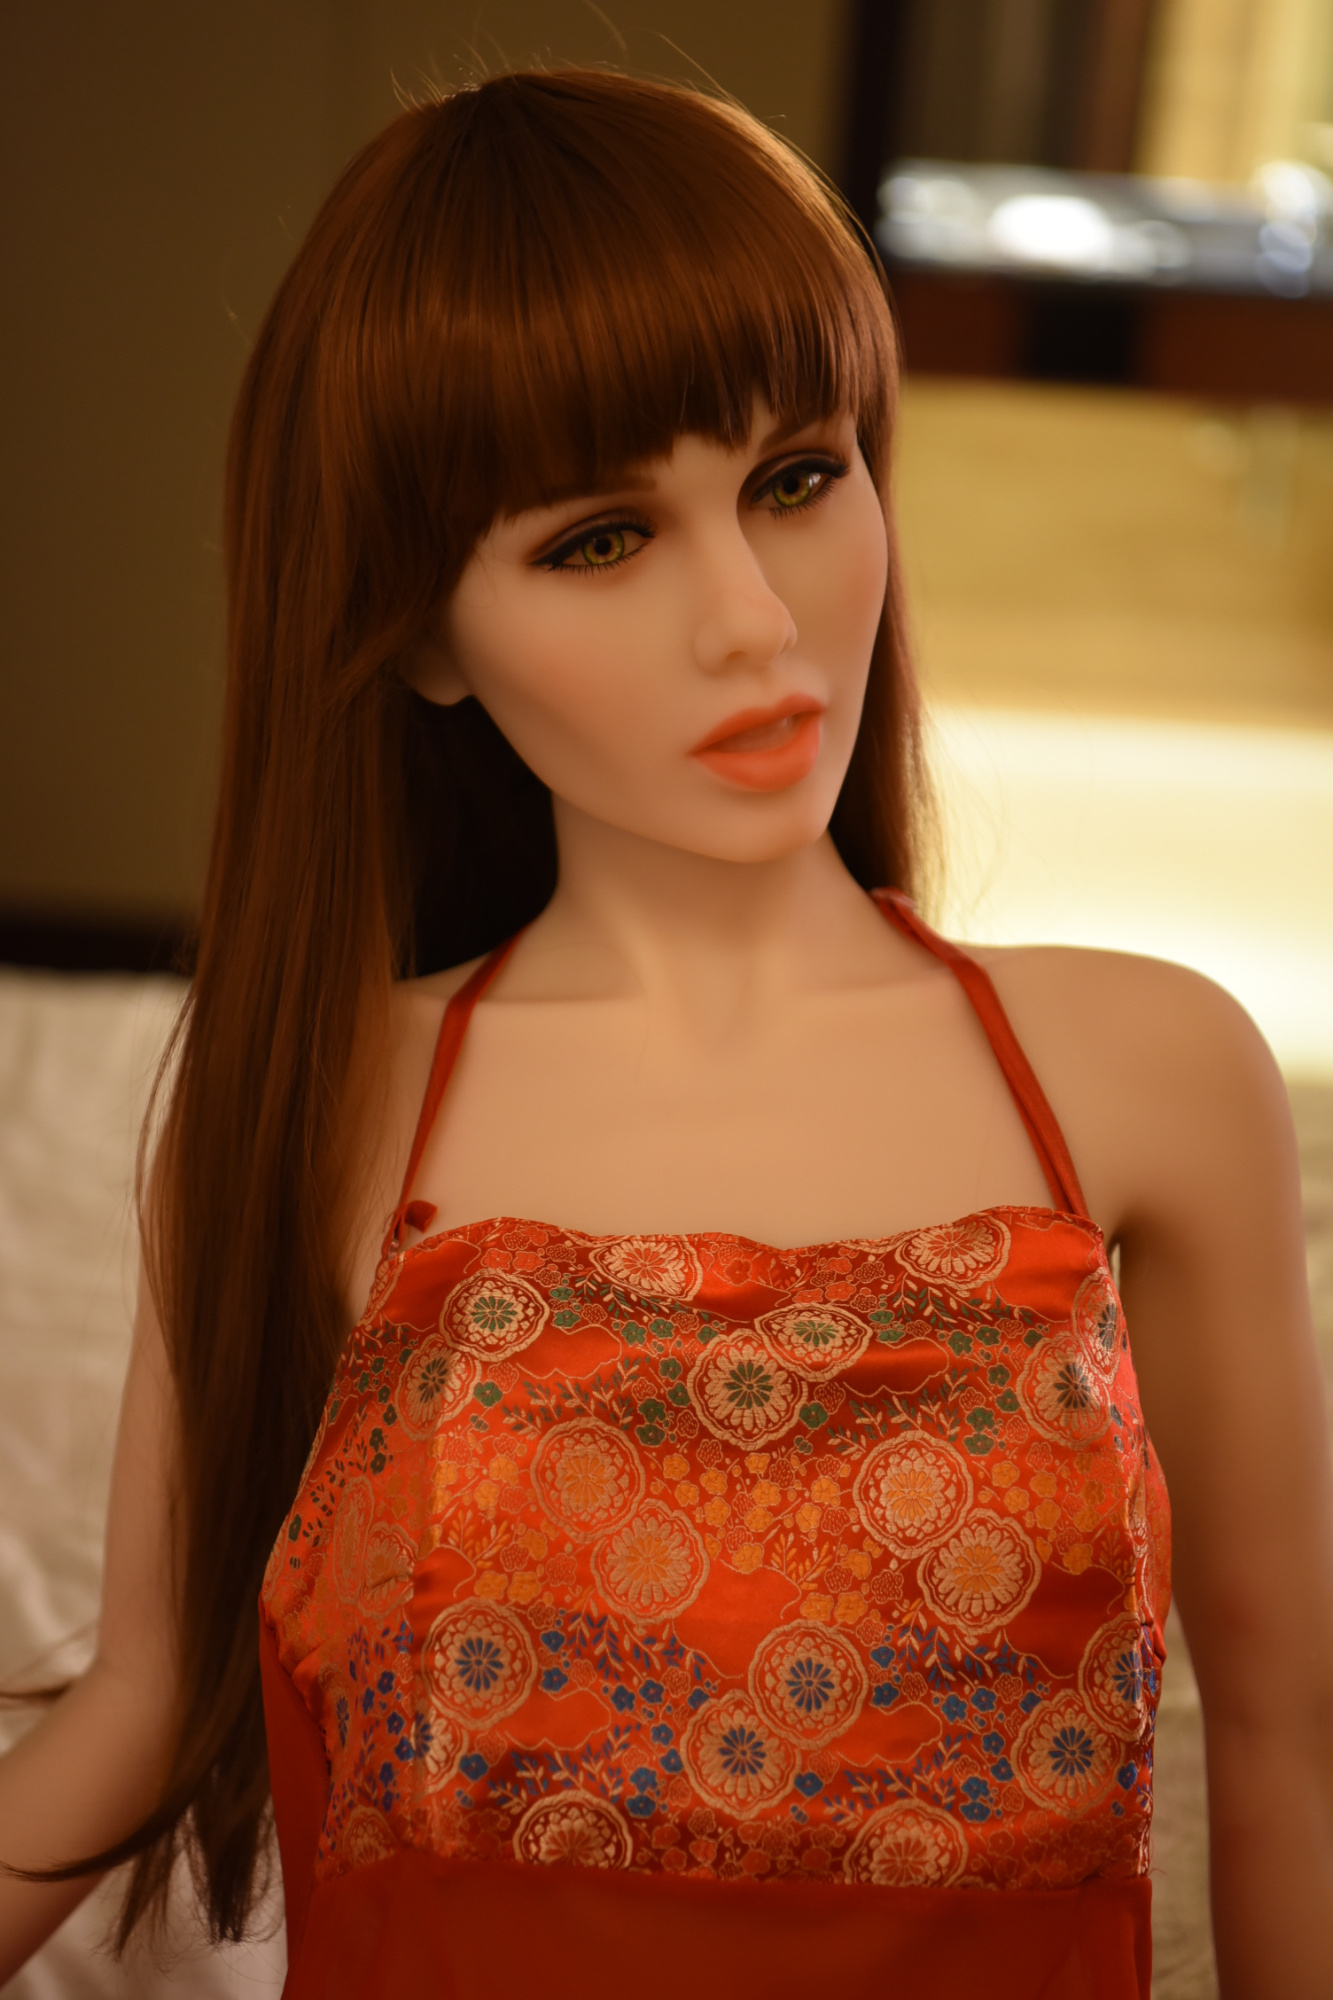 poupée wm doll real love dolls silicone sex doll realiste adulte taille reelle 19 2 - Adoption